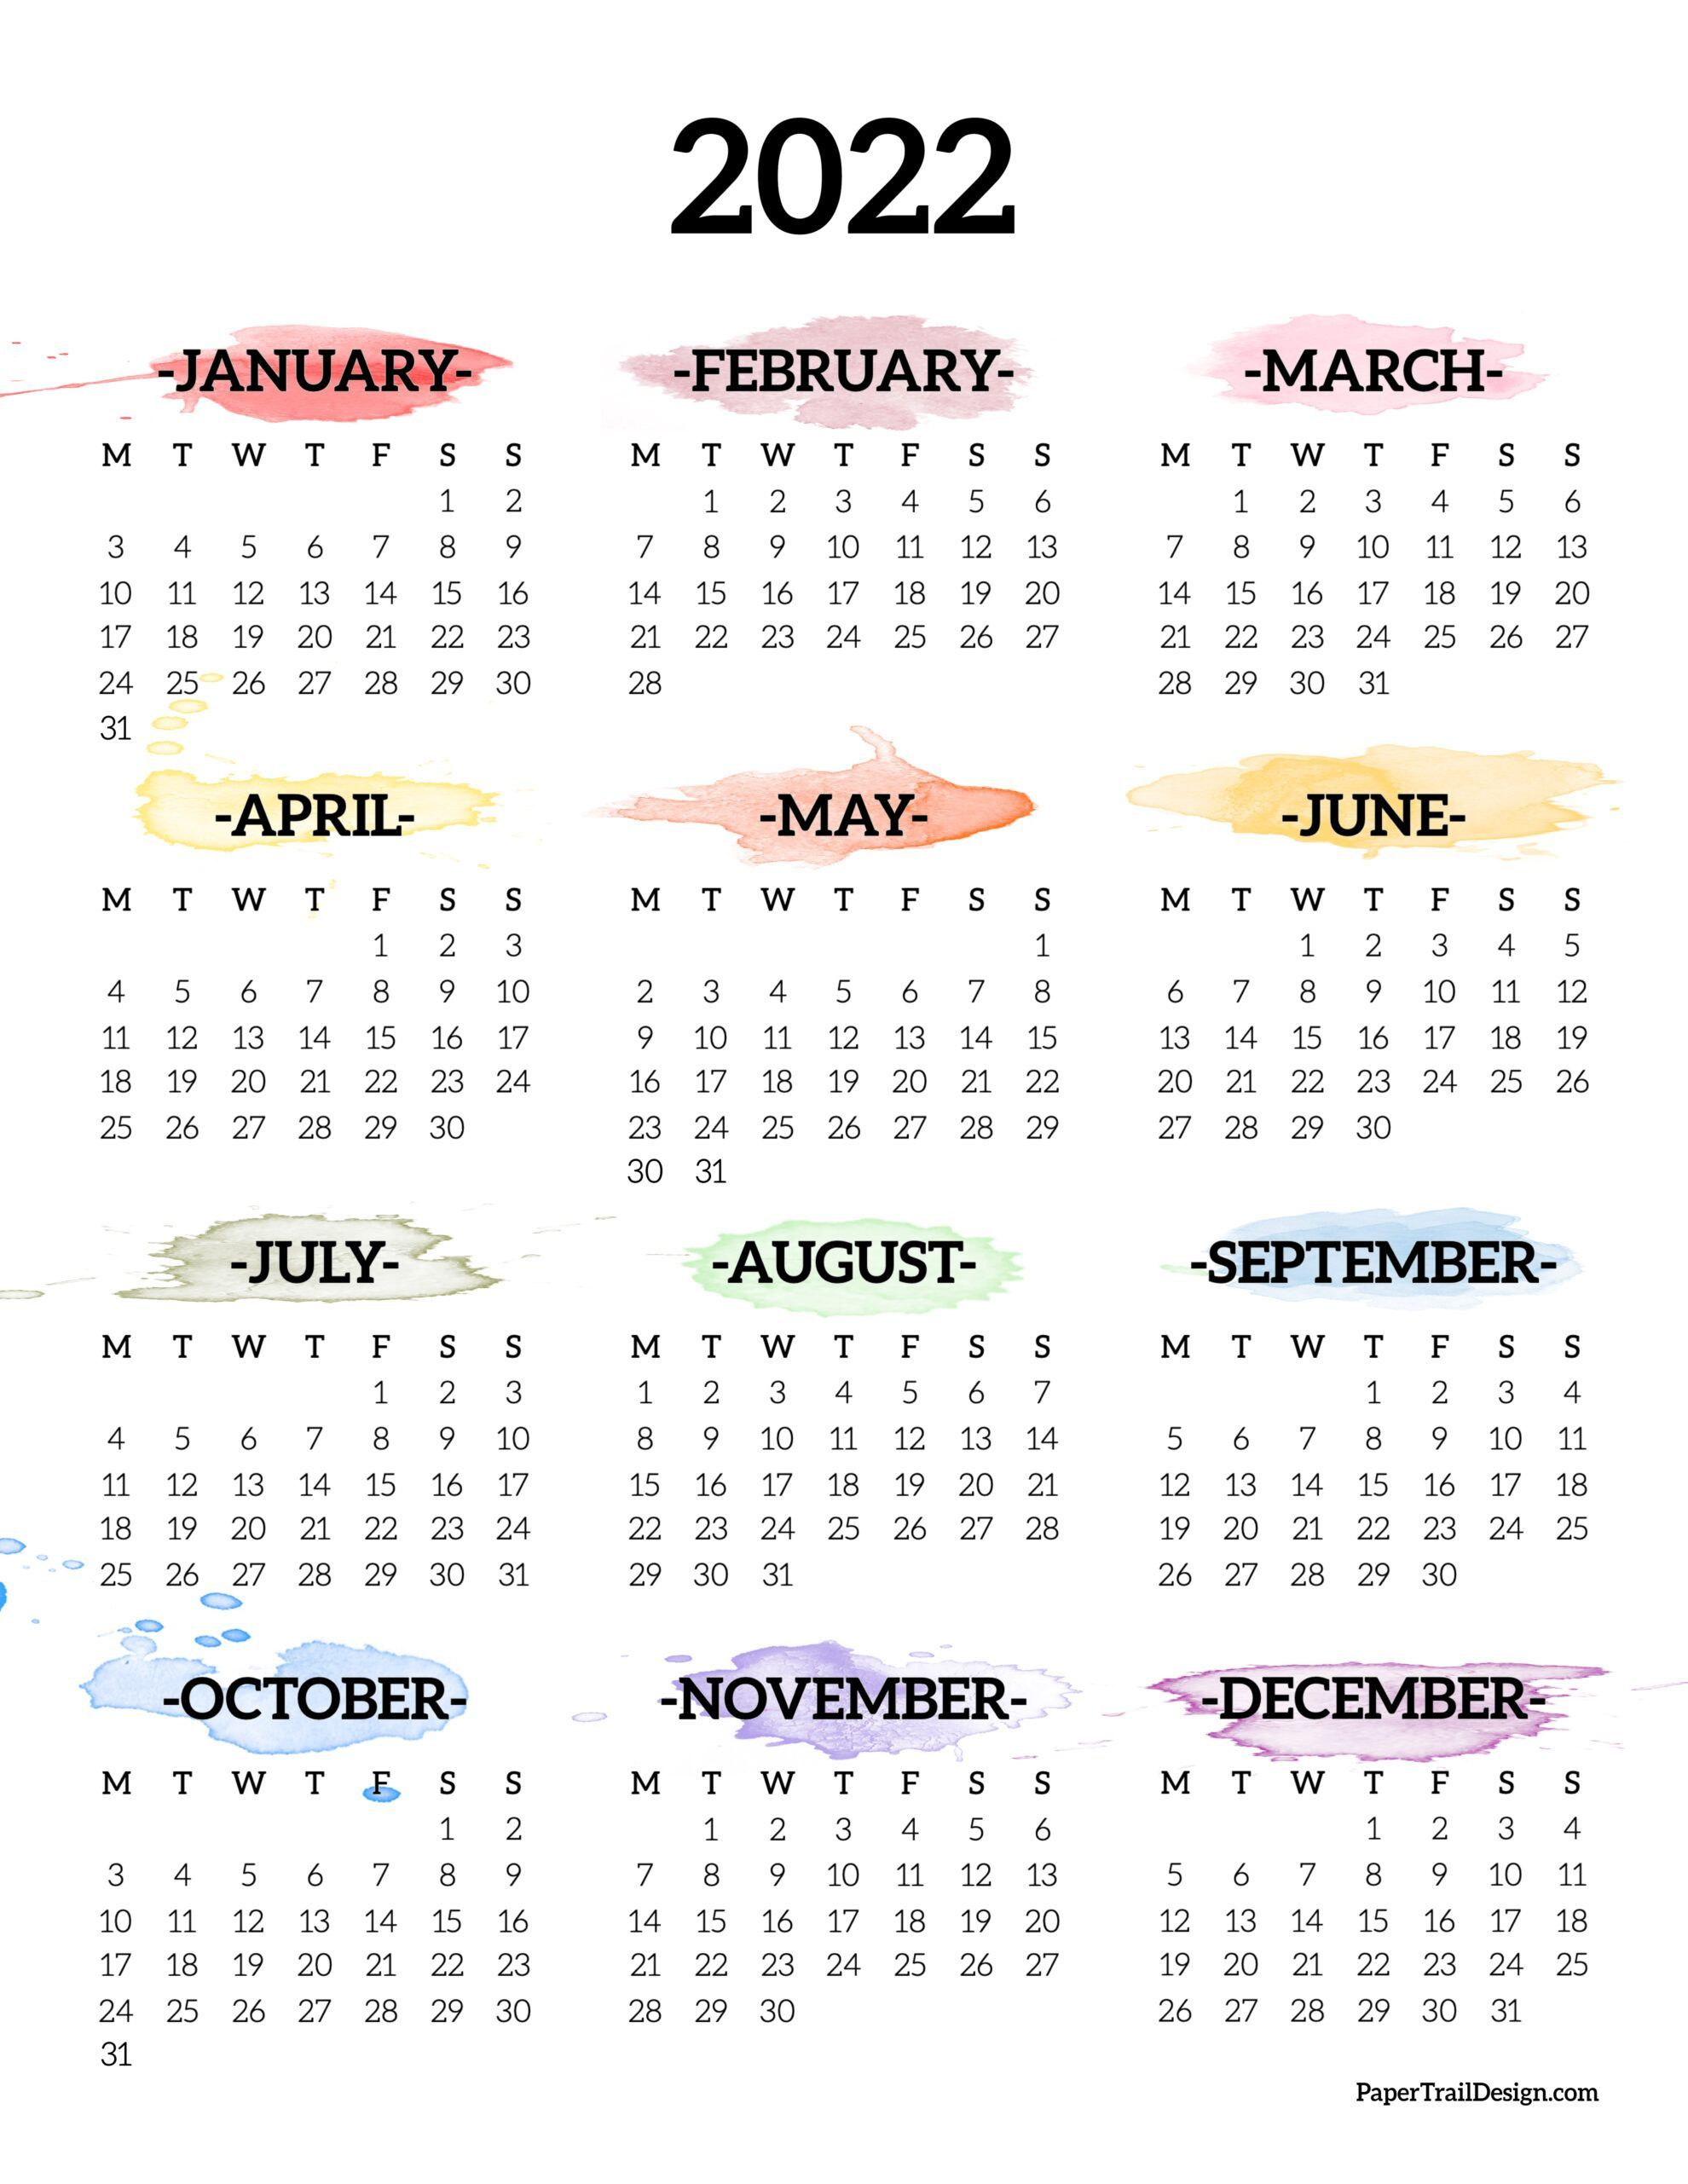 2022 Monday Start Calendar One Page Paper Trail Design In 2021 Daily Planner Pages Planner Pages Writing Paper Printable Stationery